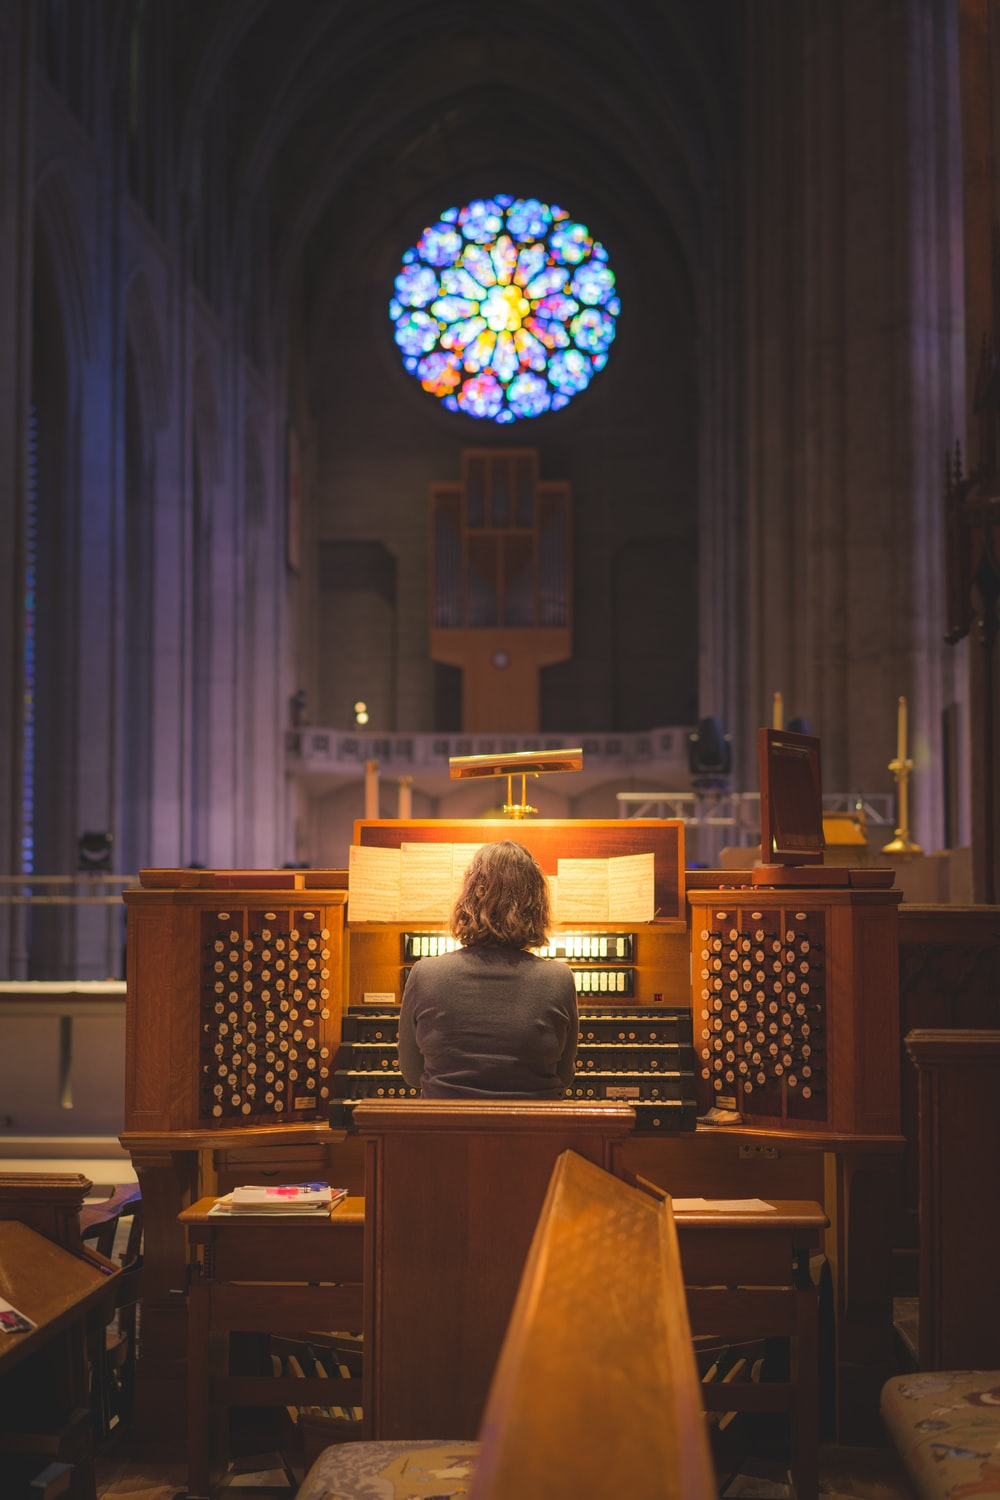 person sitting in front of church organ